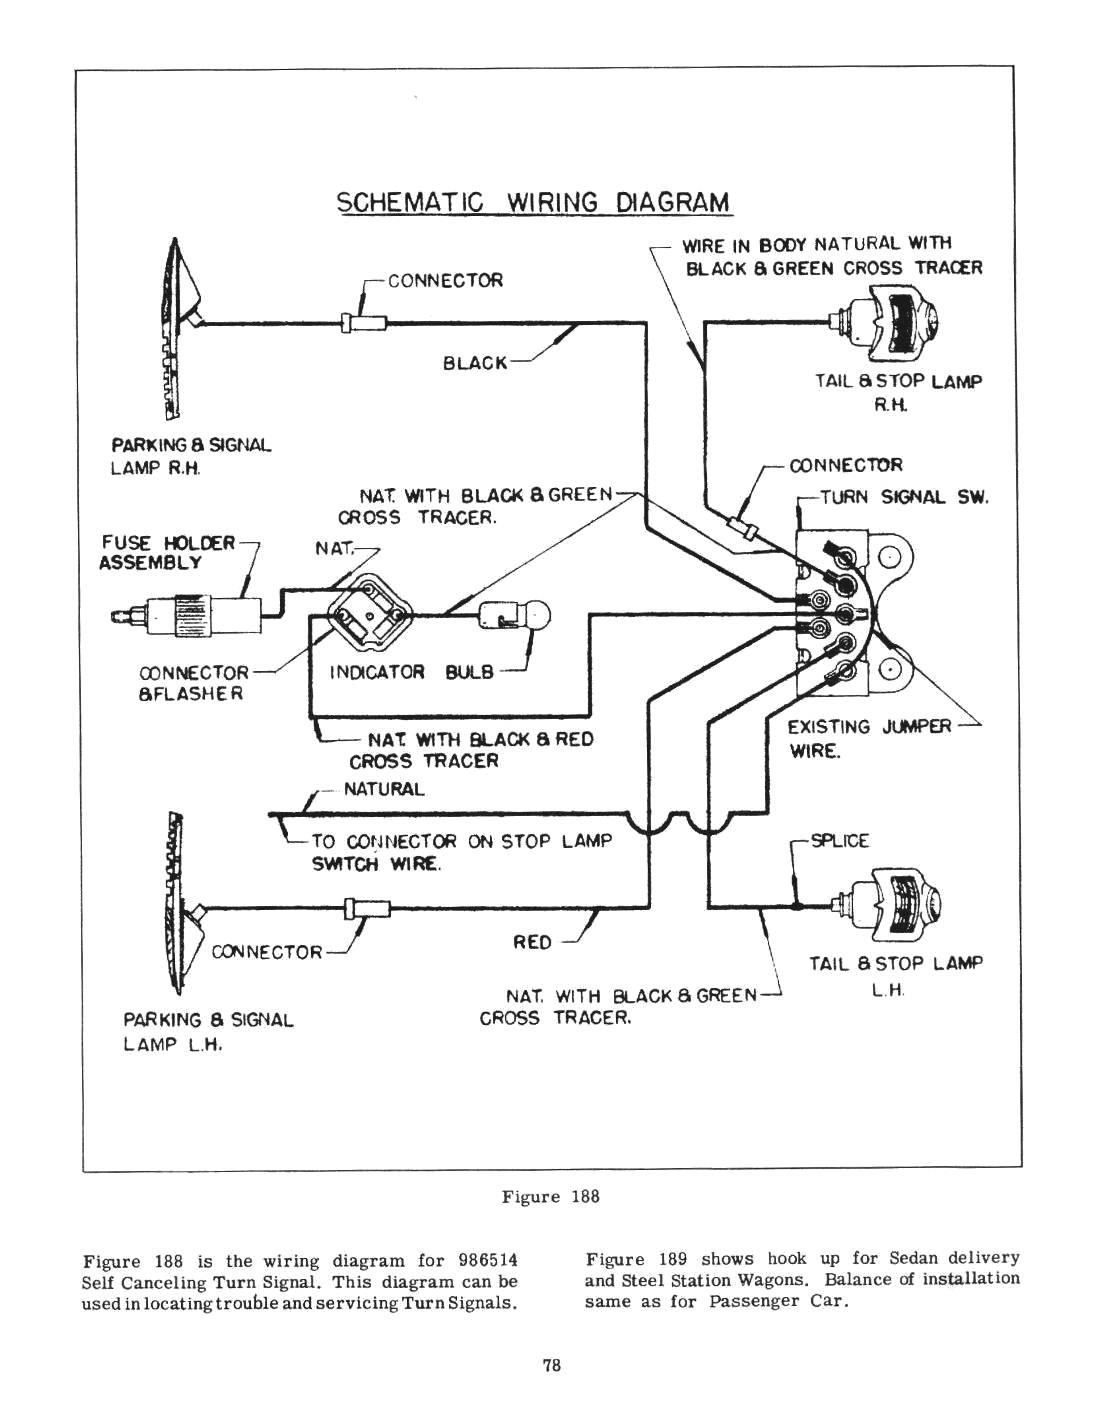 51aim78 51 turn signal switch and wiring question chevytalk free Chevy Brake Light Switch Wiring Diagram at reclaimingppi.co